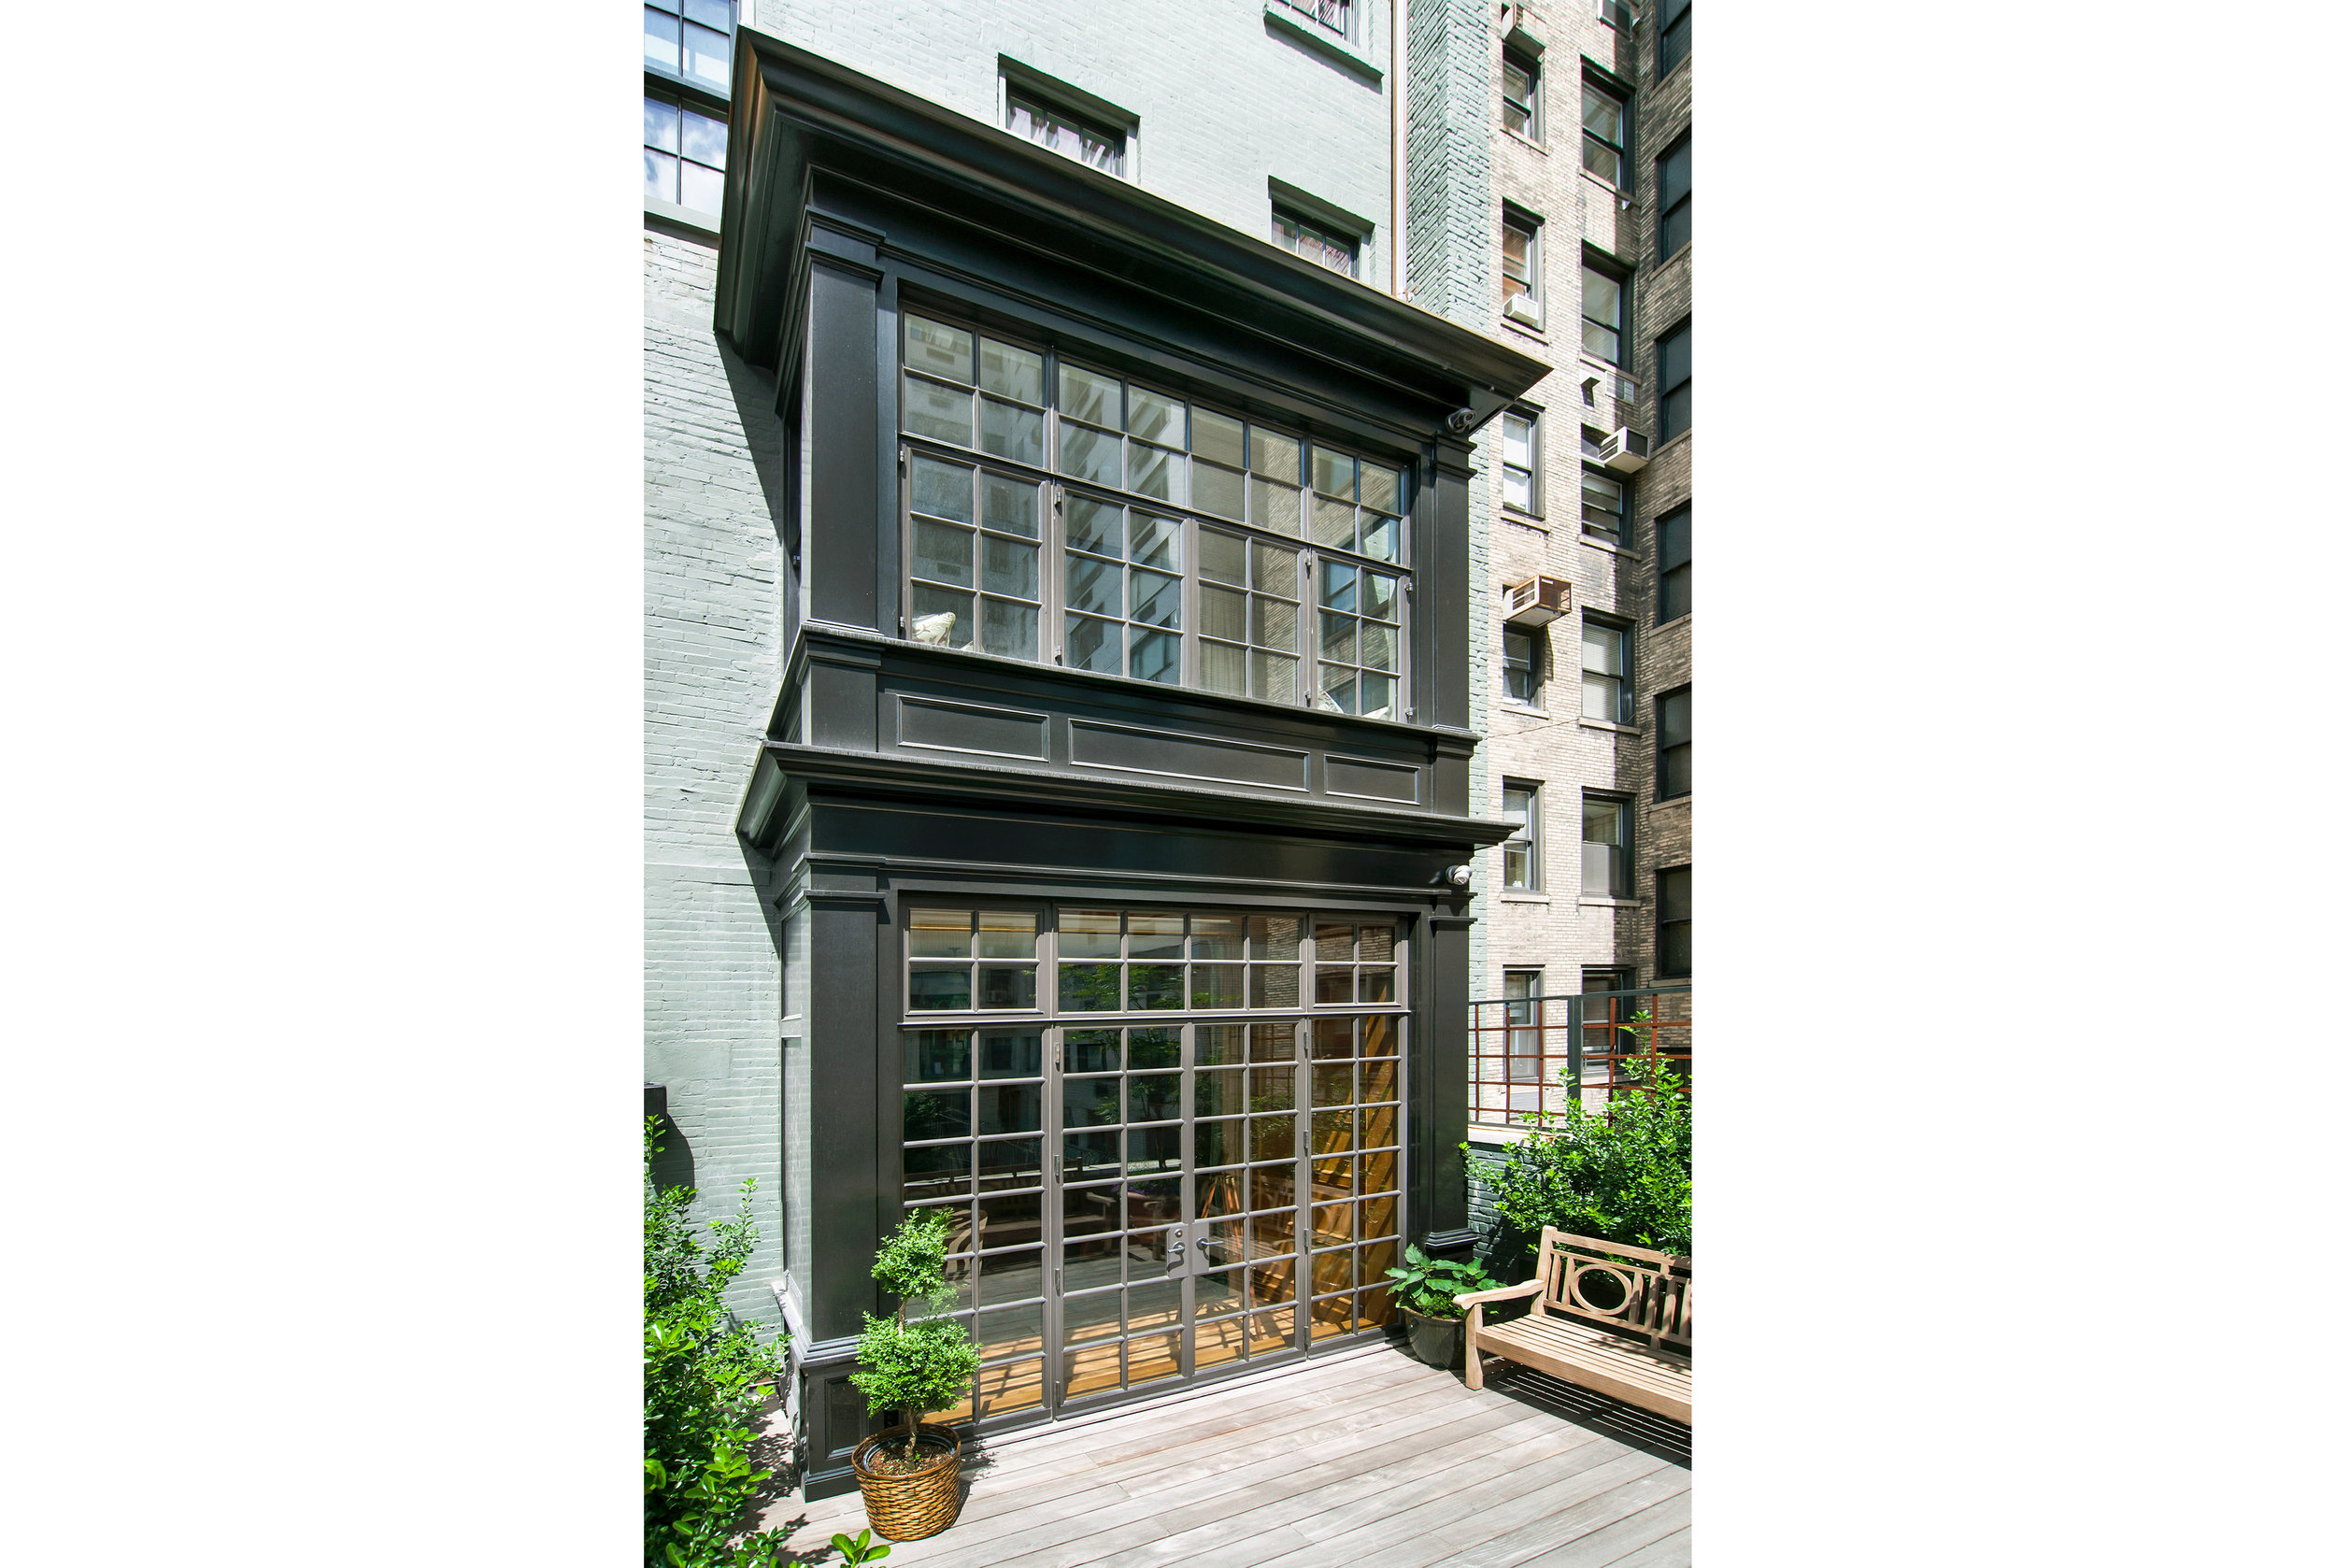 9b.TownhouseUES.jpg